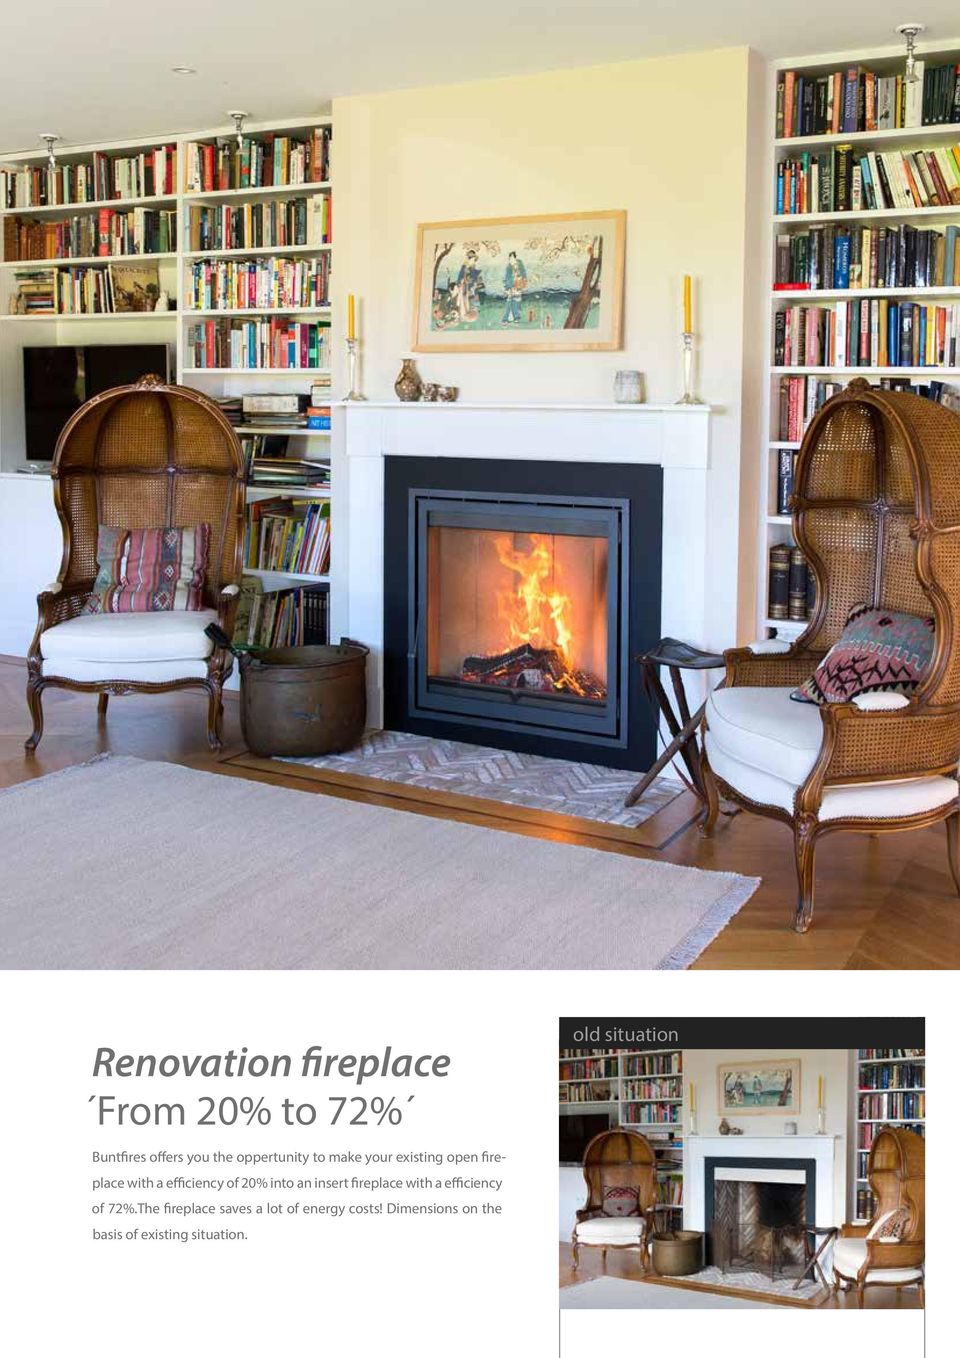 of 20% into an insert fireplace with a efficiency of 72%.